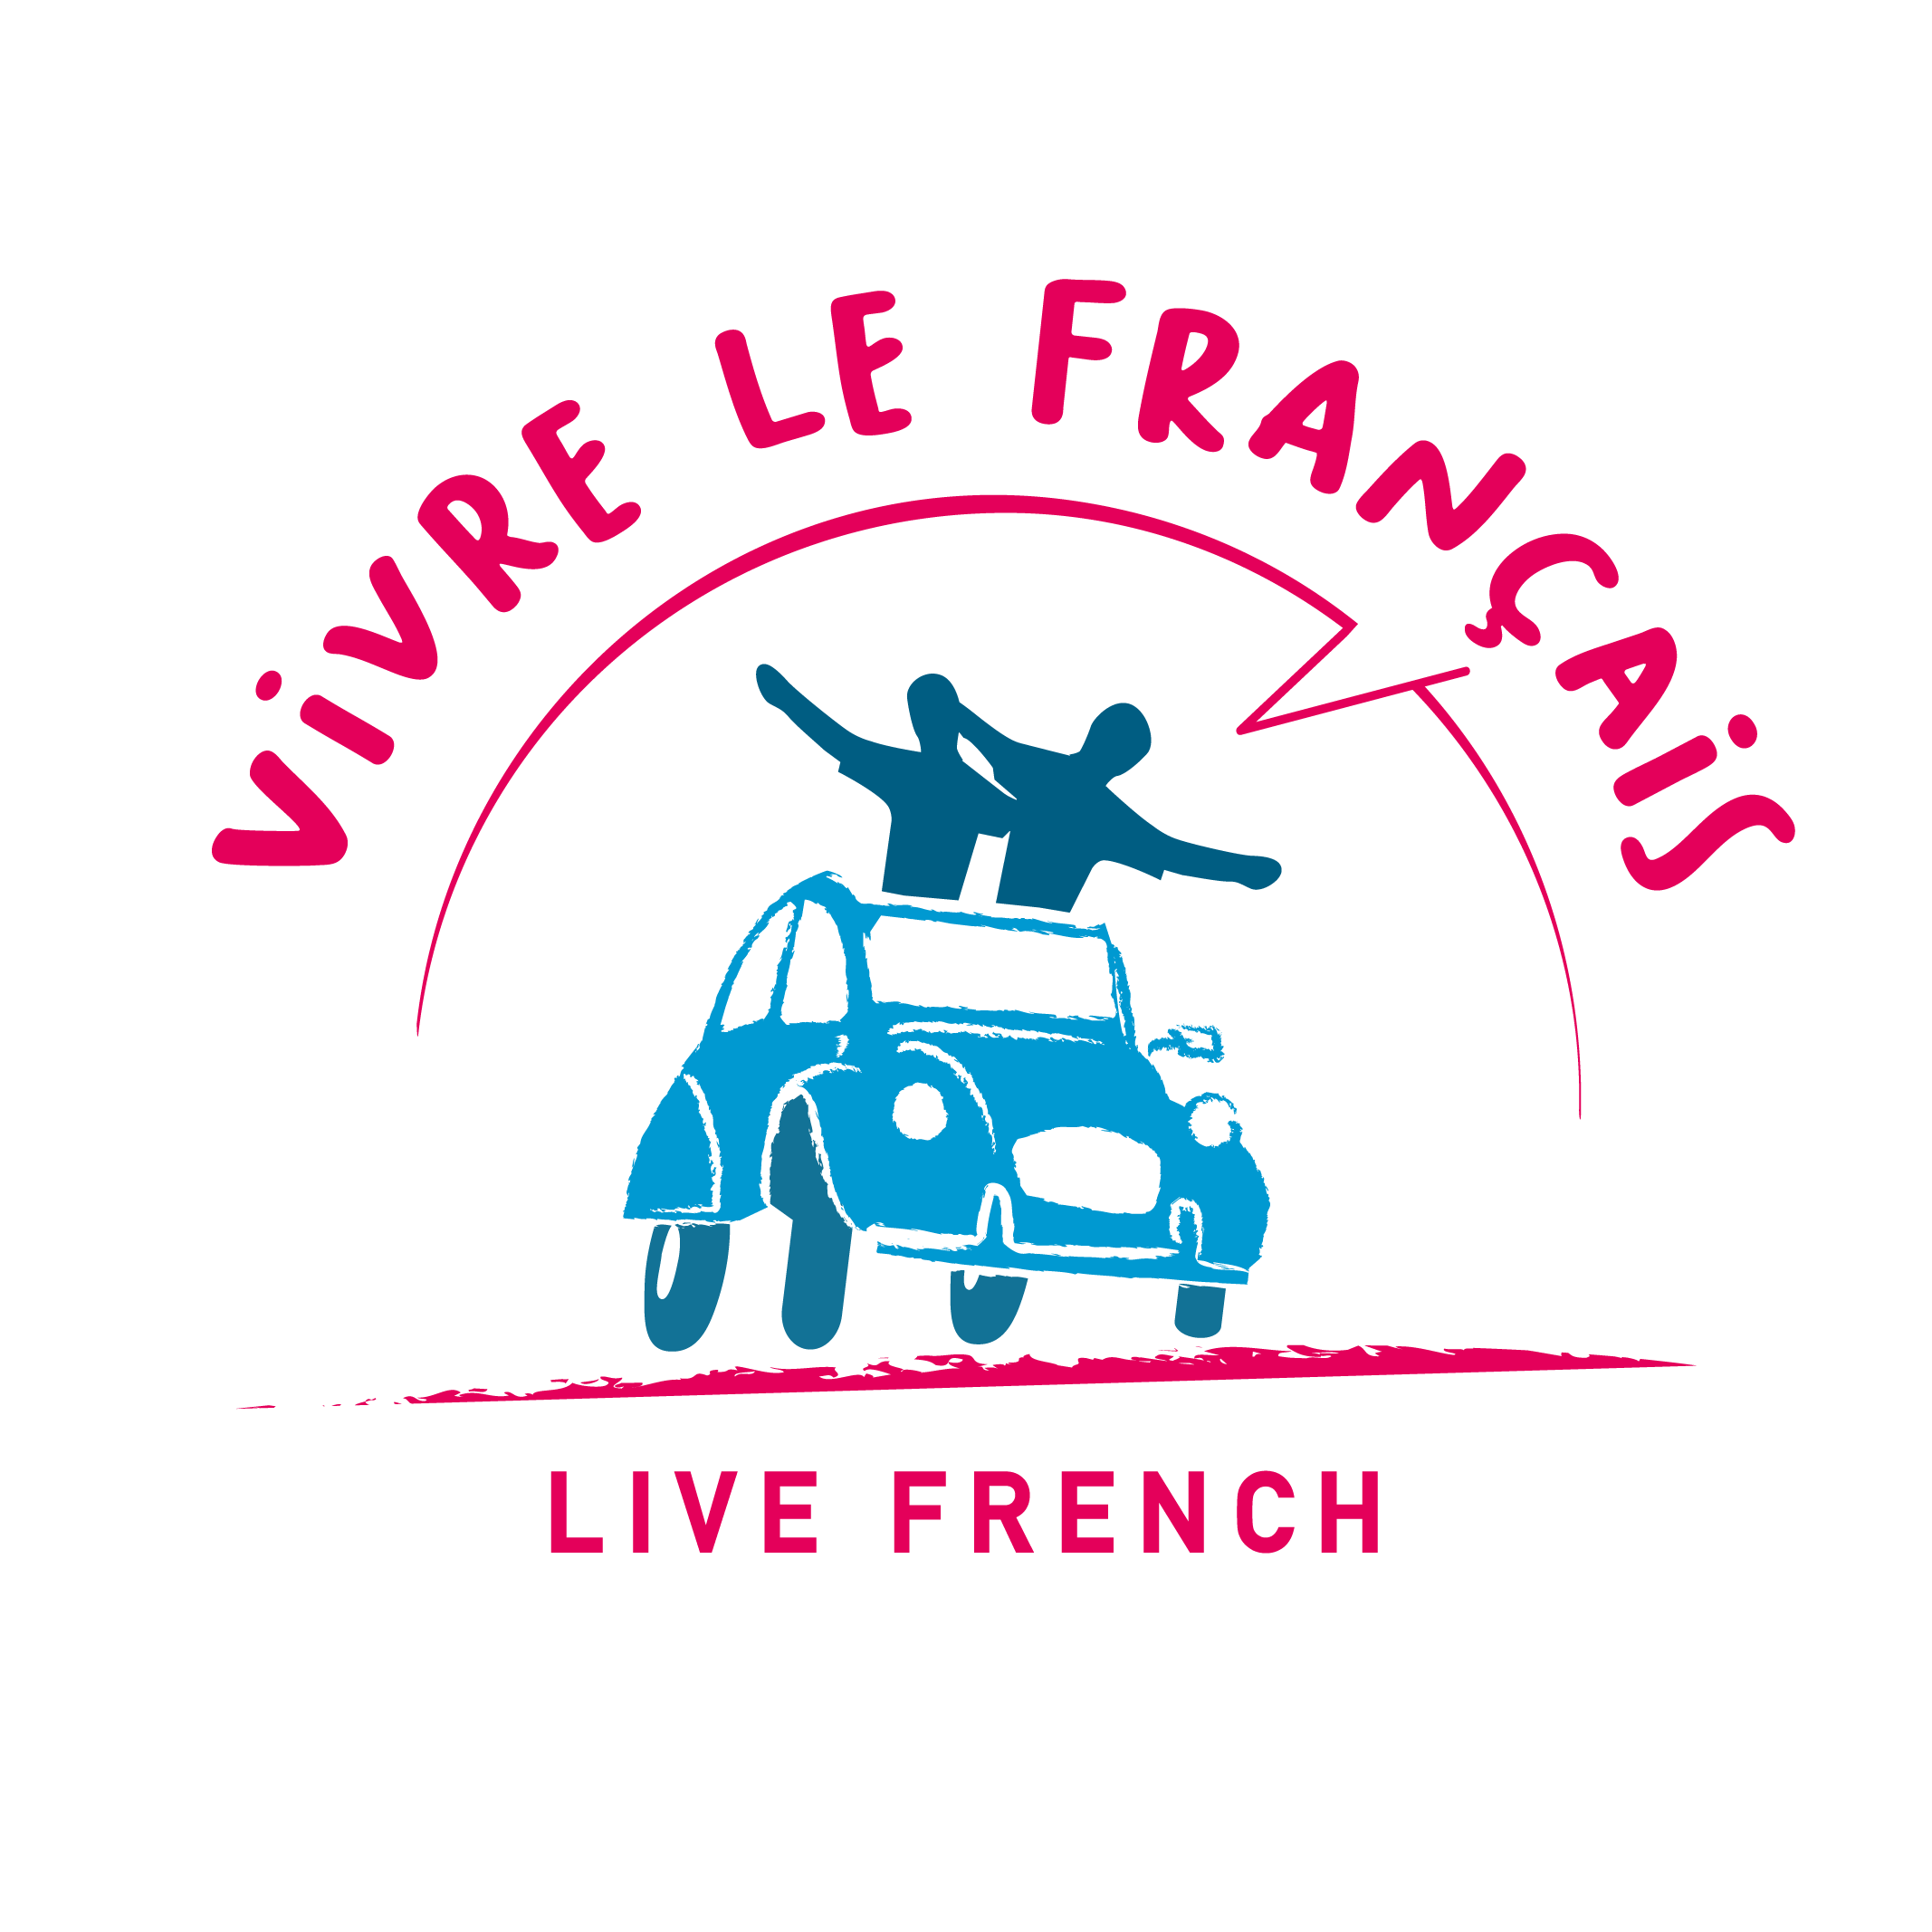 Live French